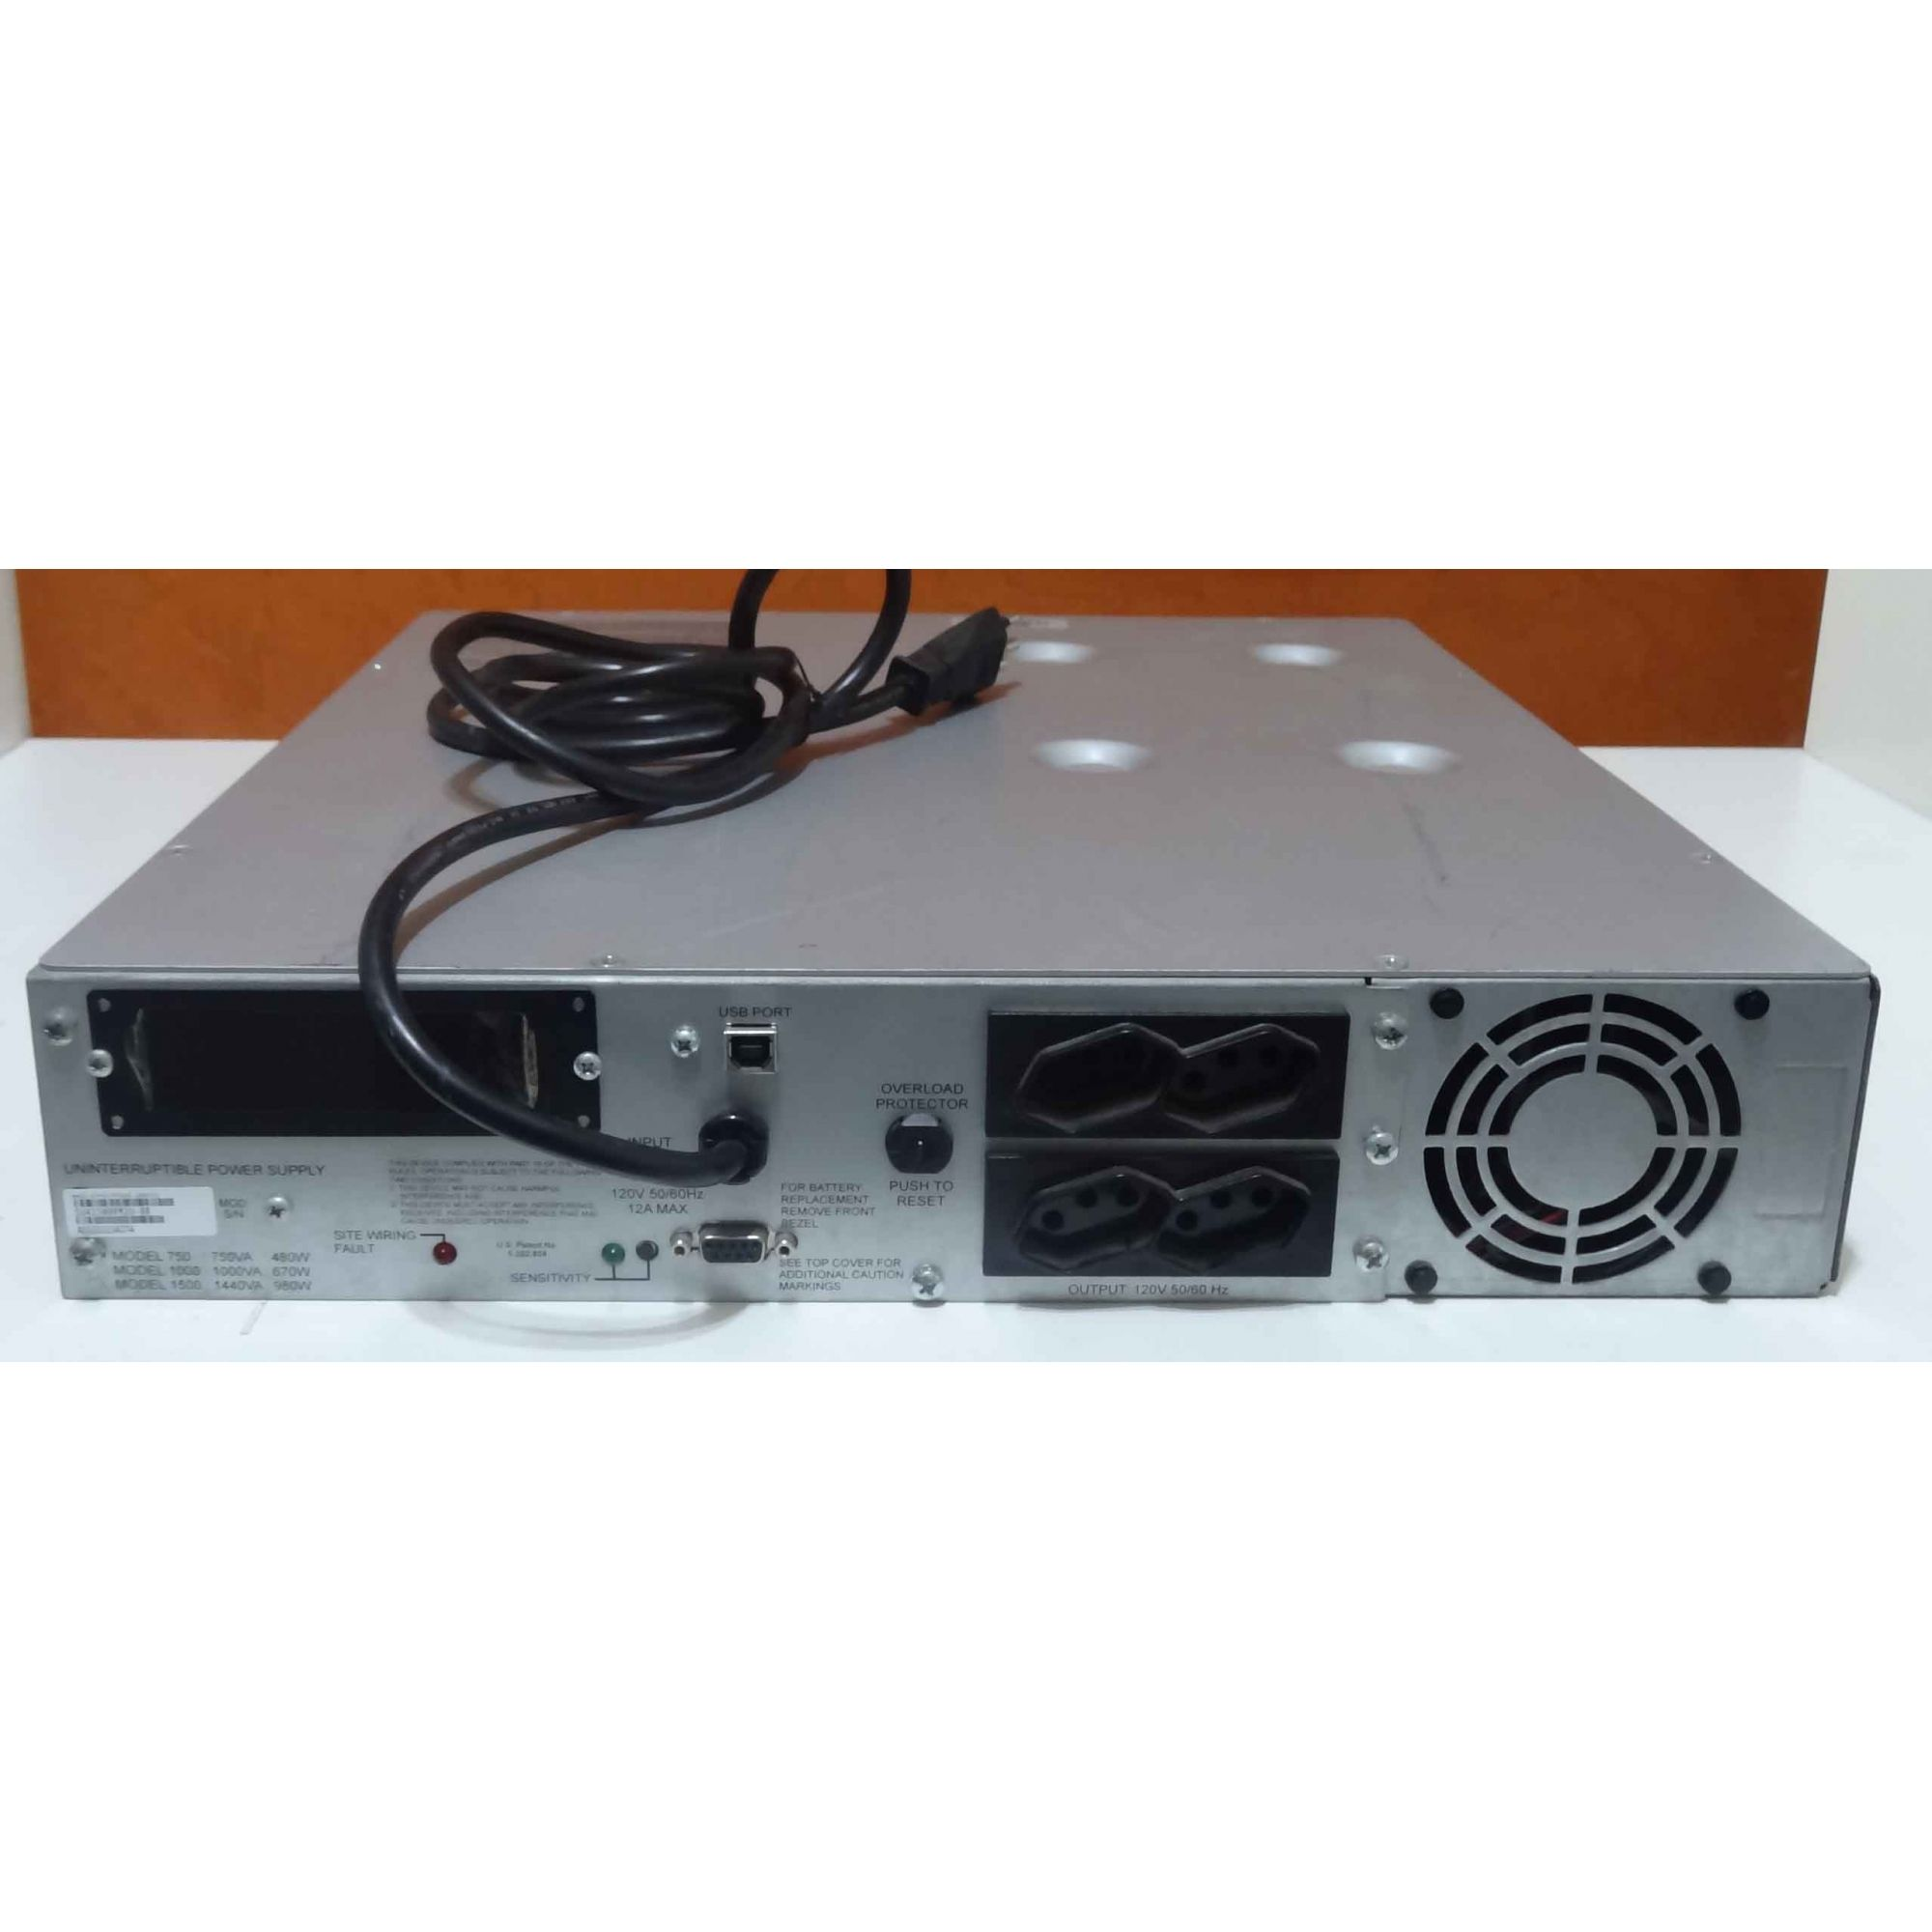 Nobreak Apc Smart-ups 1500va, Rack 2u, 230v